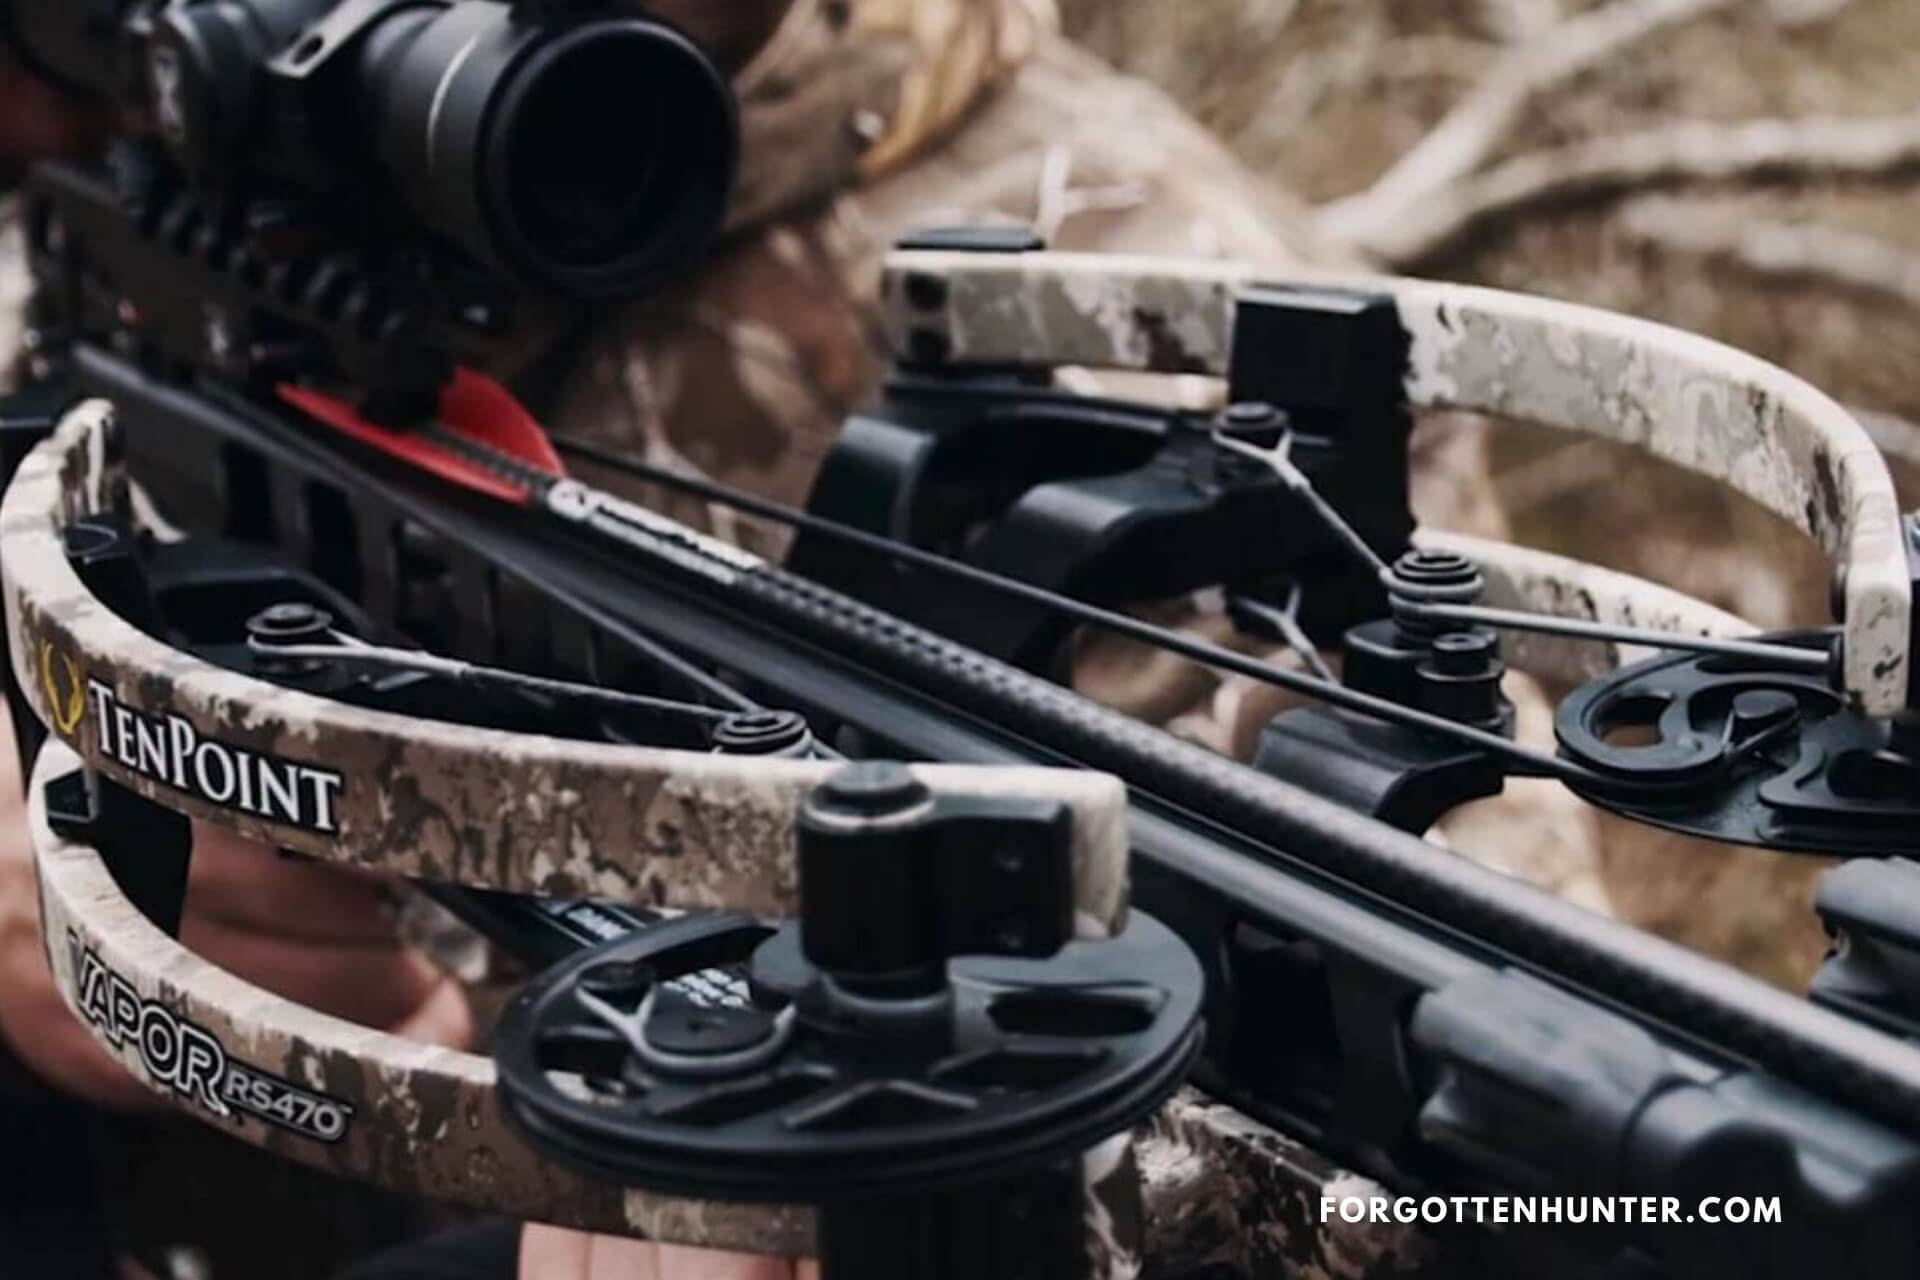 Top 10 Best New Crossbows for the Upcoming 2021 Hunting Season